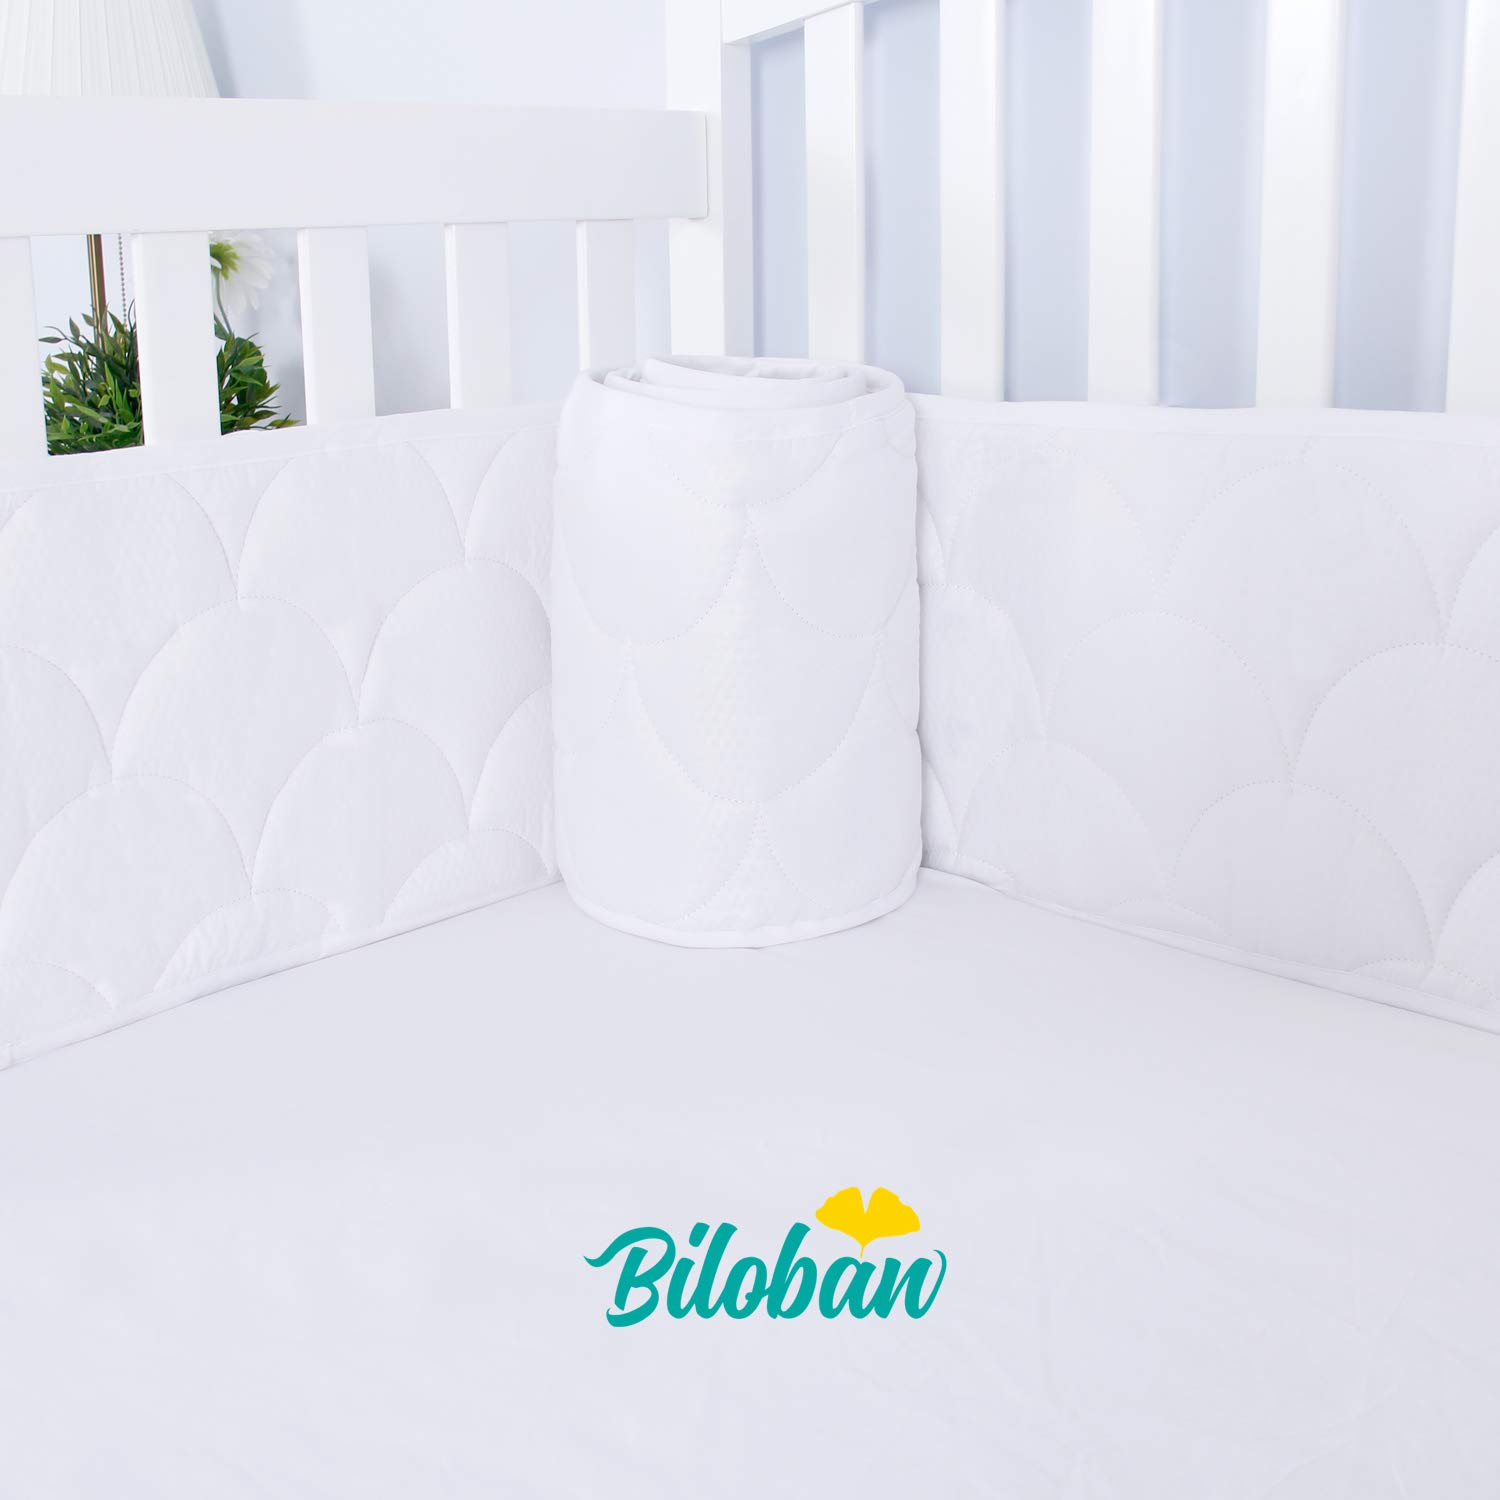 Breathable Crib Bumper Pads for Standard Crib, Nursery 3D Wave Print Crib Bedding Bumper Liners for Boys Girls 4 Pieces/Set, White by Biloban